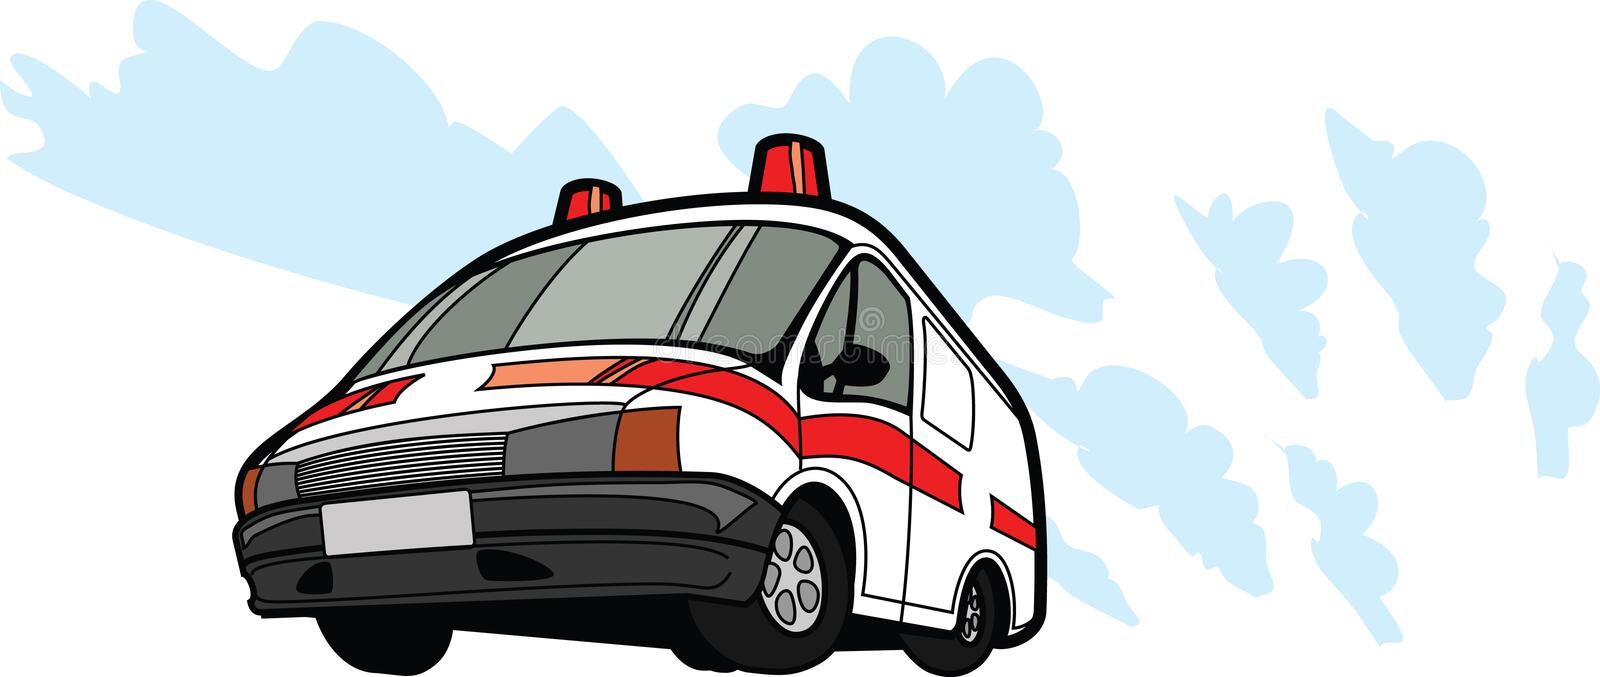 Ambulance car in motion. Isolated royalty free illustration